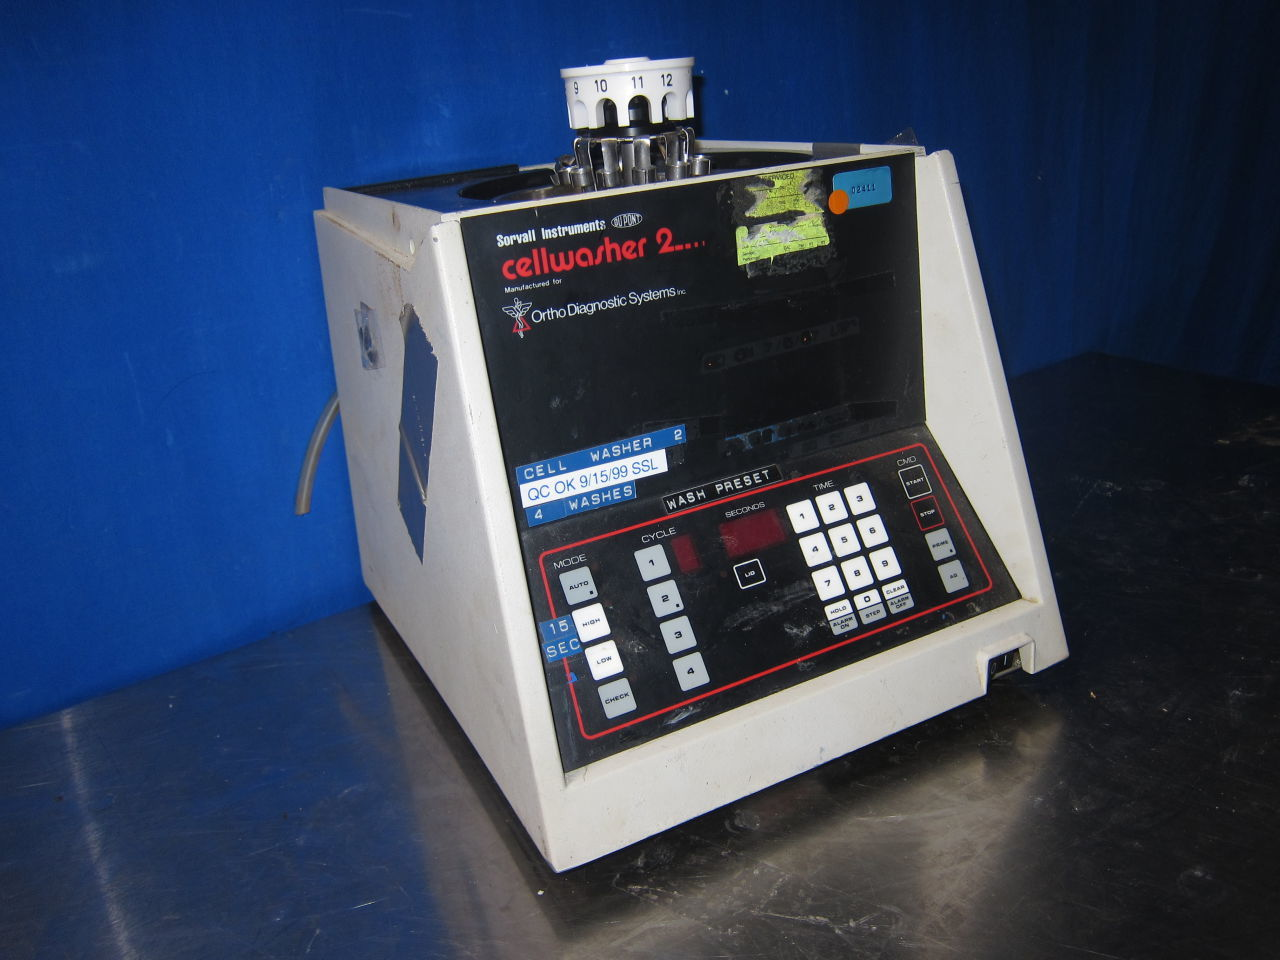 SORVALL INSTRUMENTS  Cell Washer